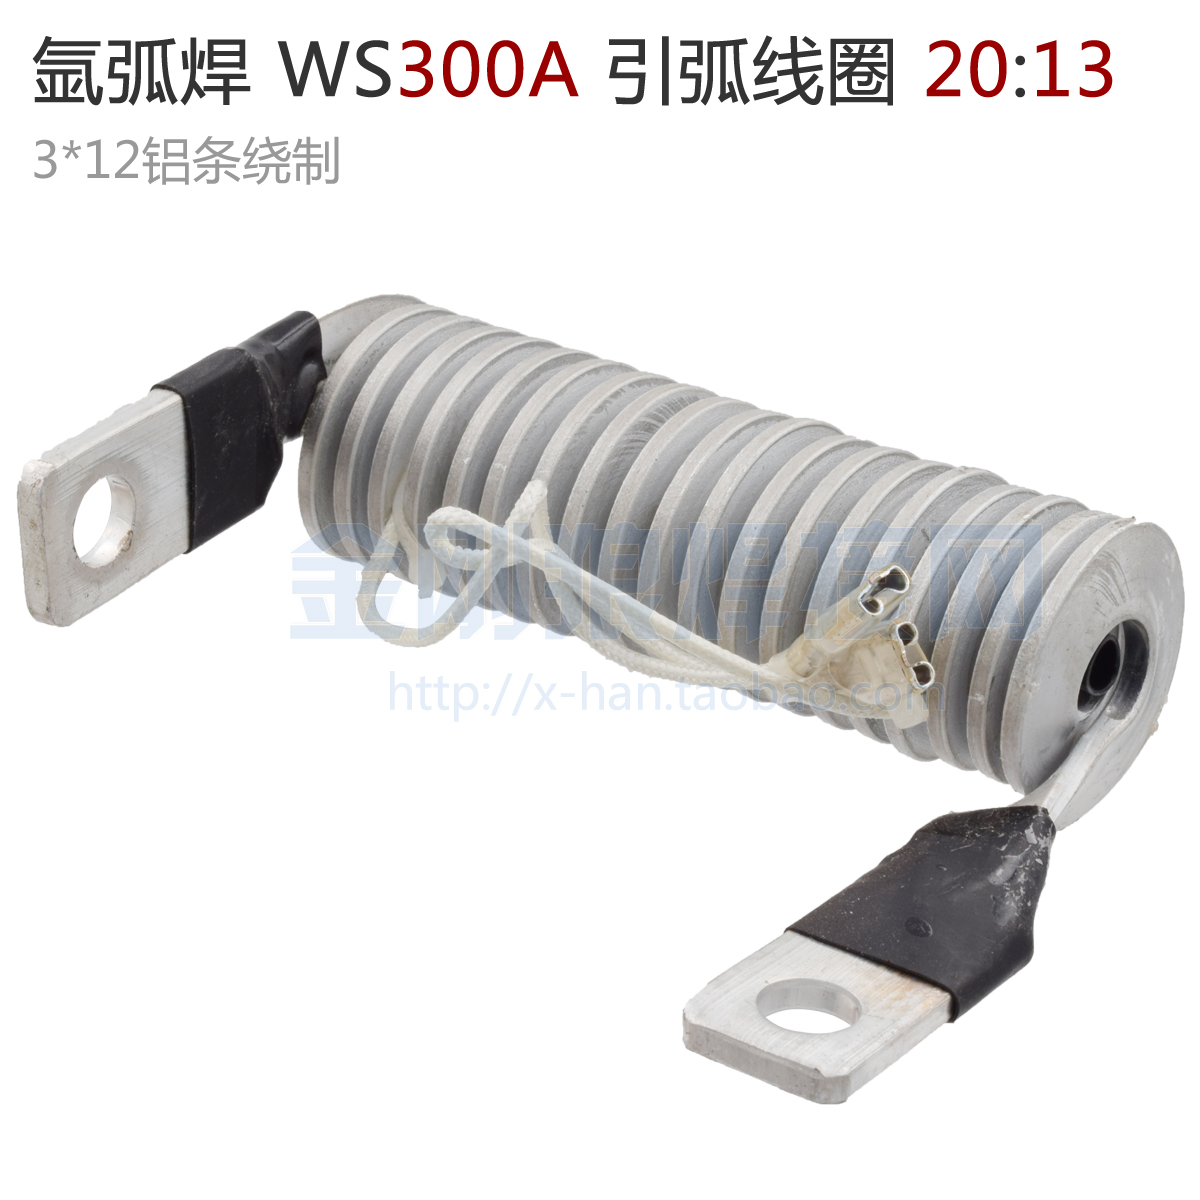 High Frequency Arc Starting of WS TIG 300A 315 Induction Coil Arc Starter for Inverter Argon Arc Welding MachineHigh Frequency Arc Starting of WS TIG 300A 315 Induction Coil Arc Starter for Inverter Argon Arc Welding Machine